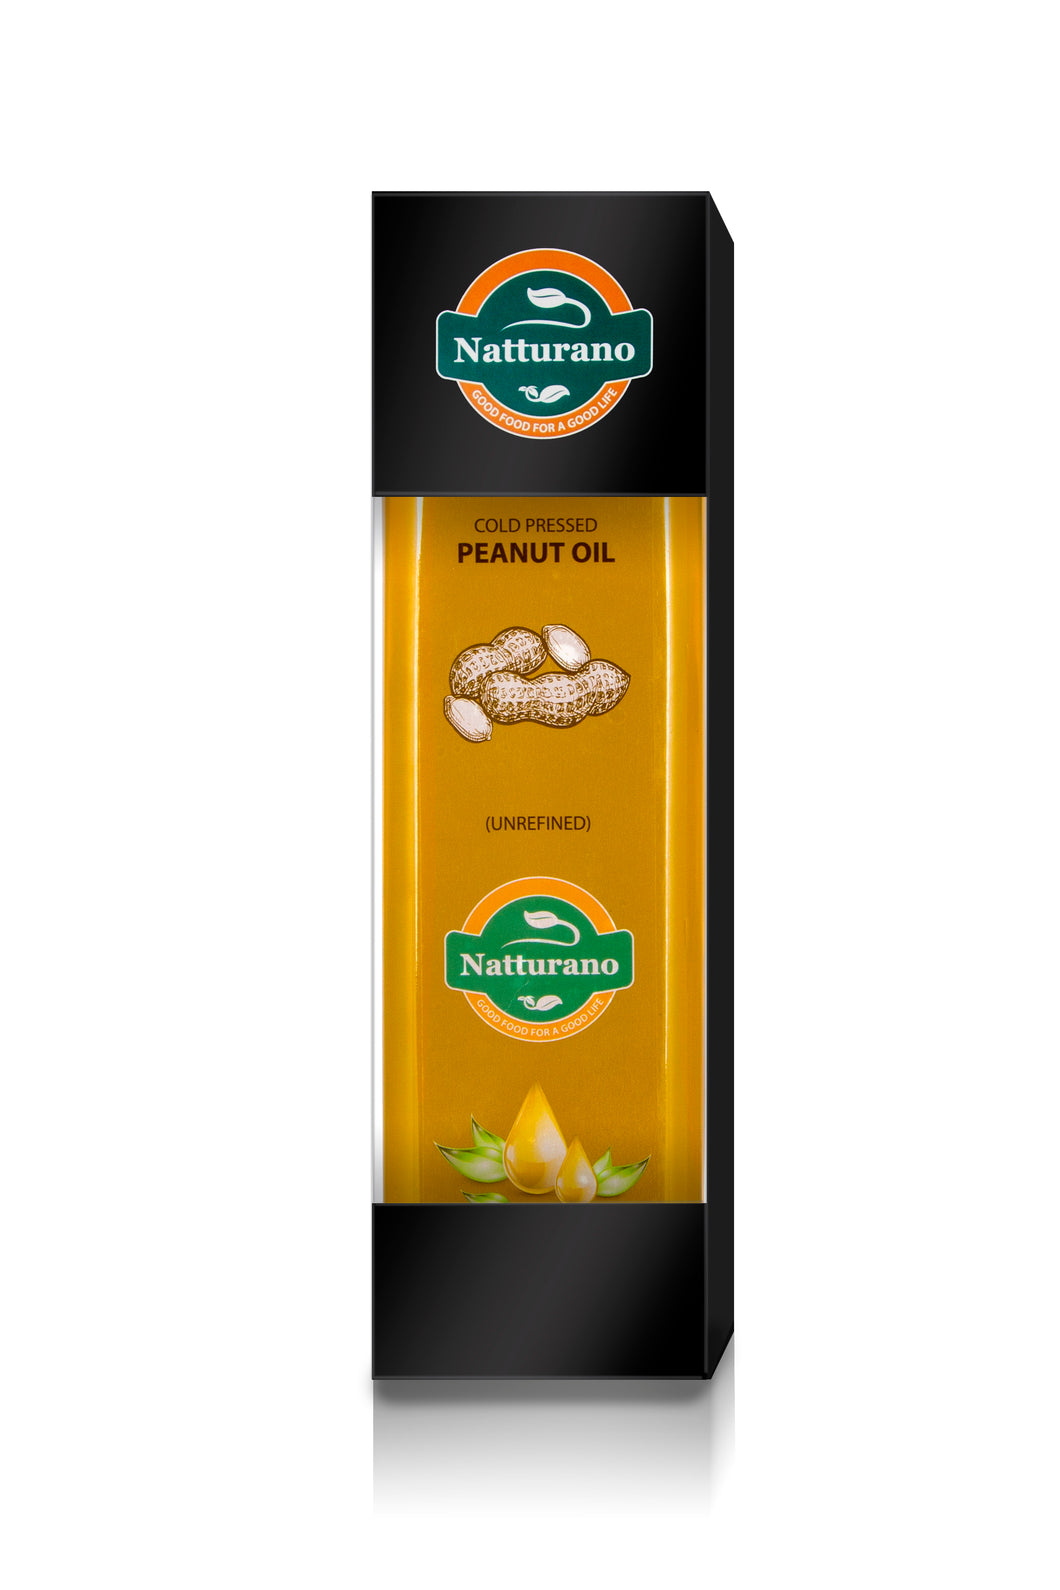 Natturano single origin premium peanut /ground nut oil